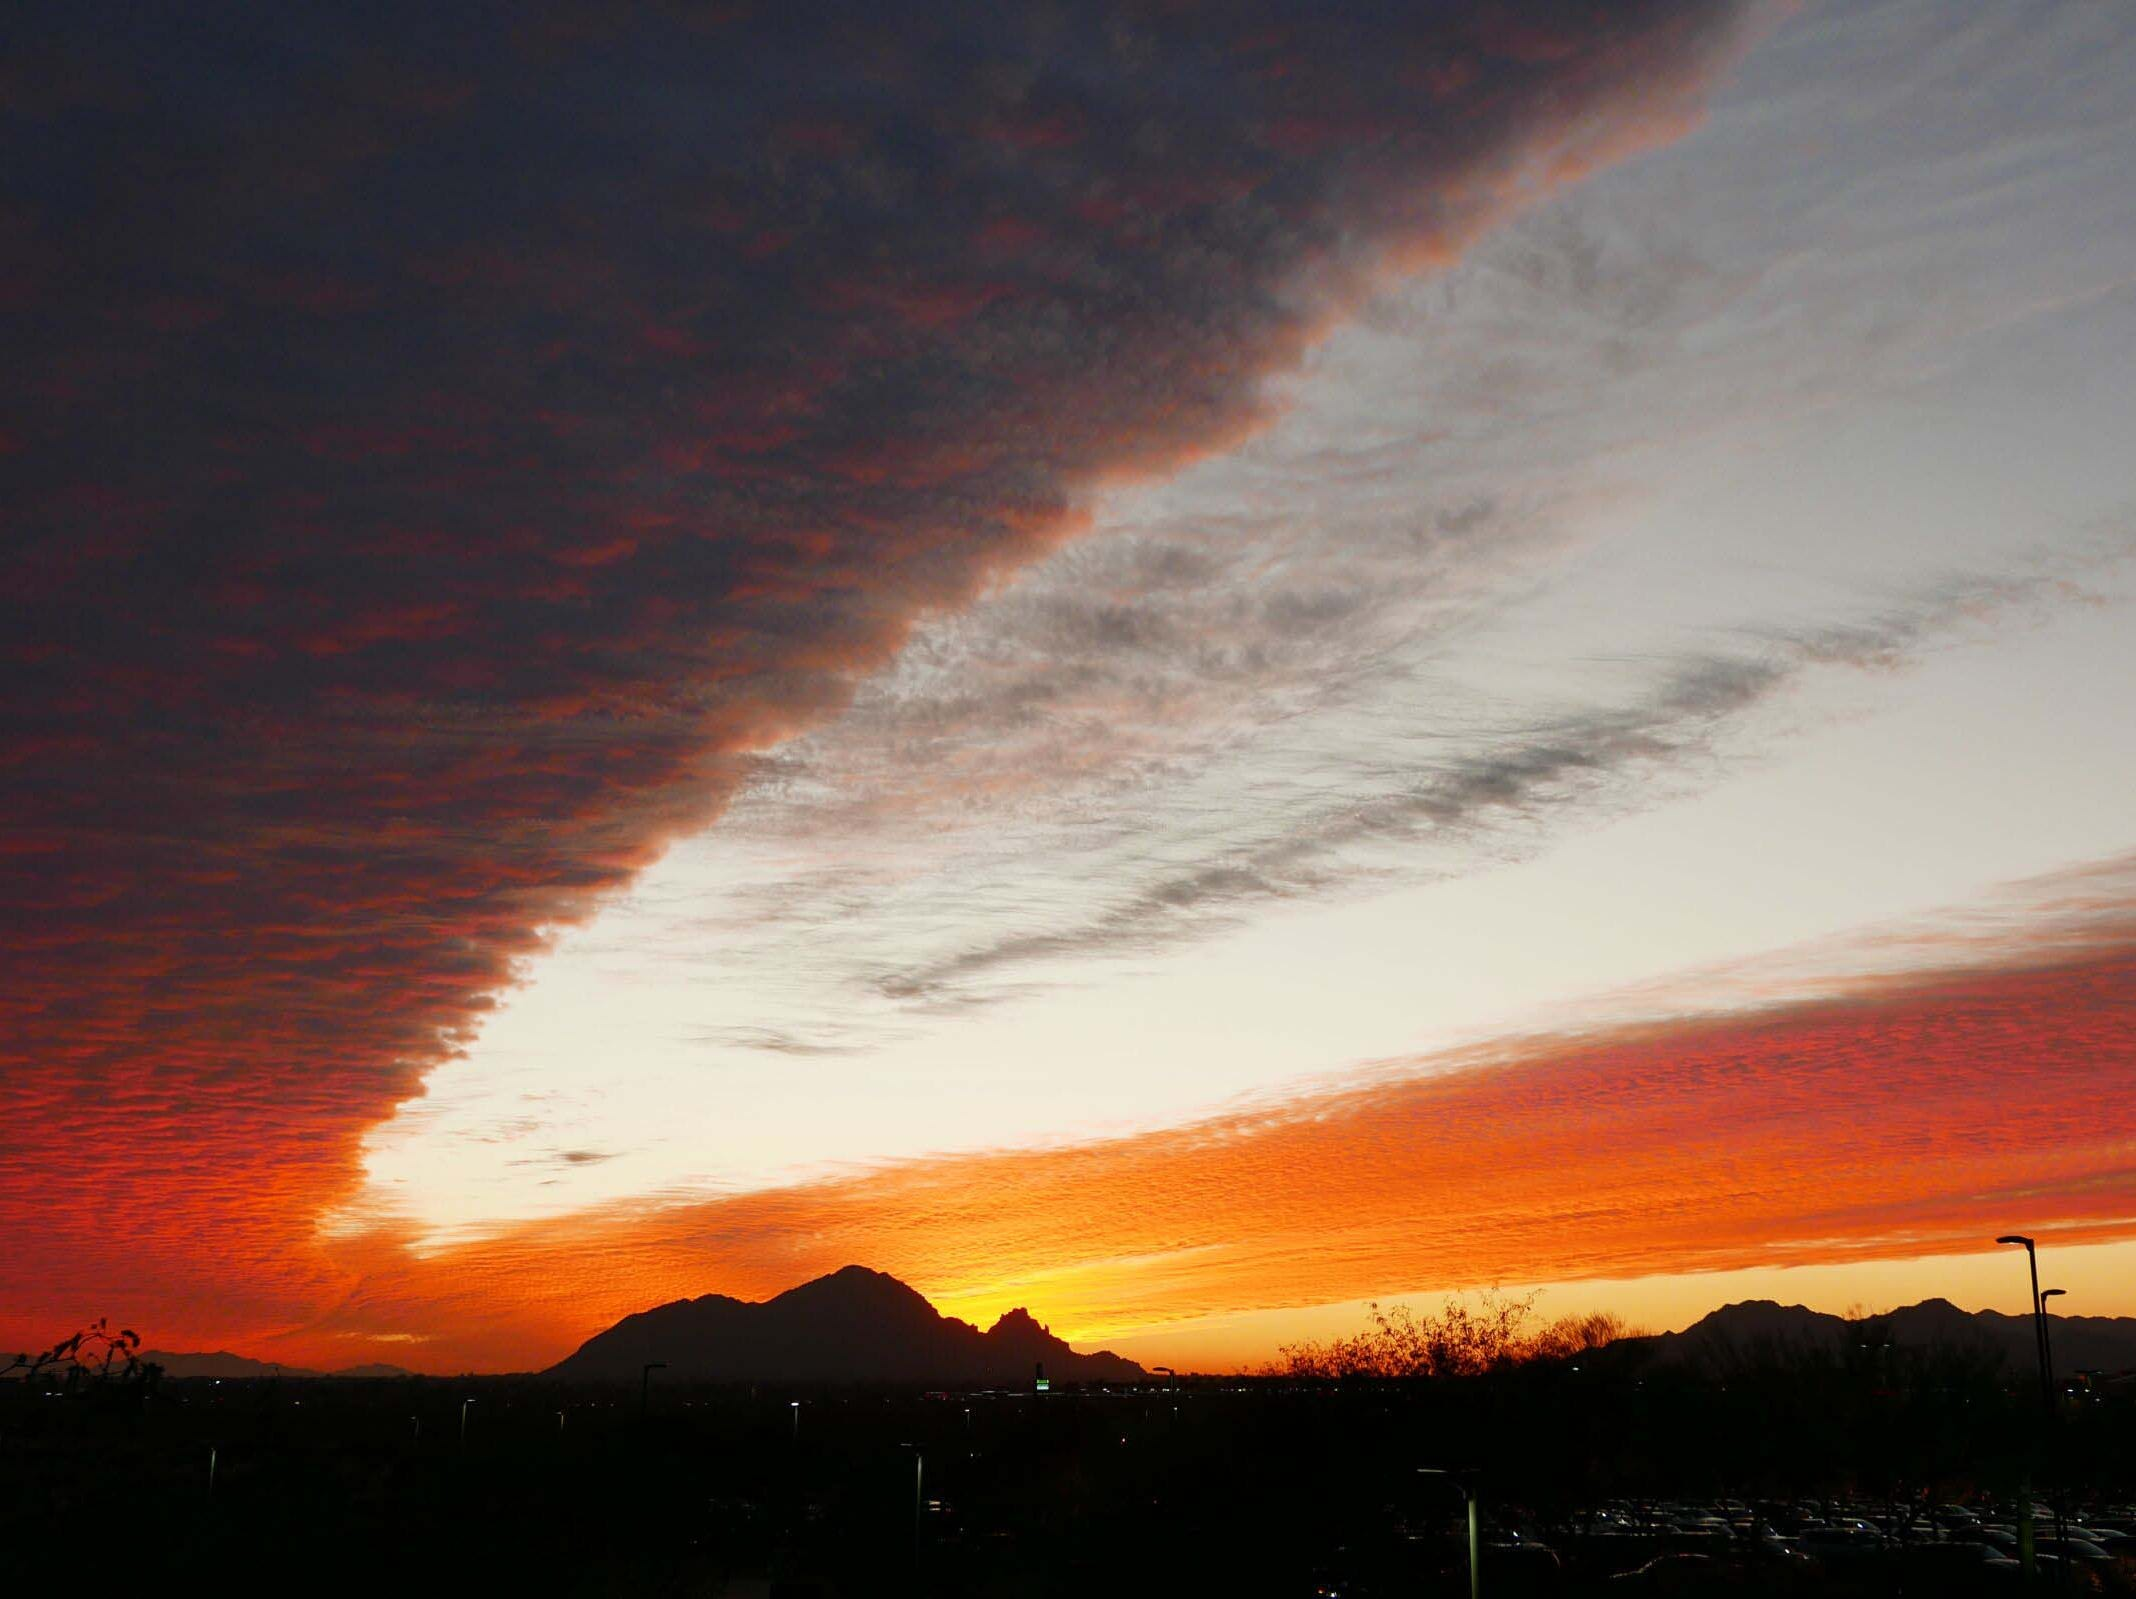 The sunset as seen from Talking Stick Resort.